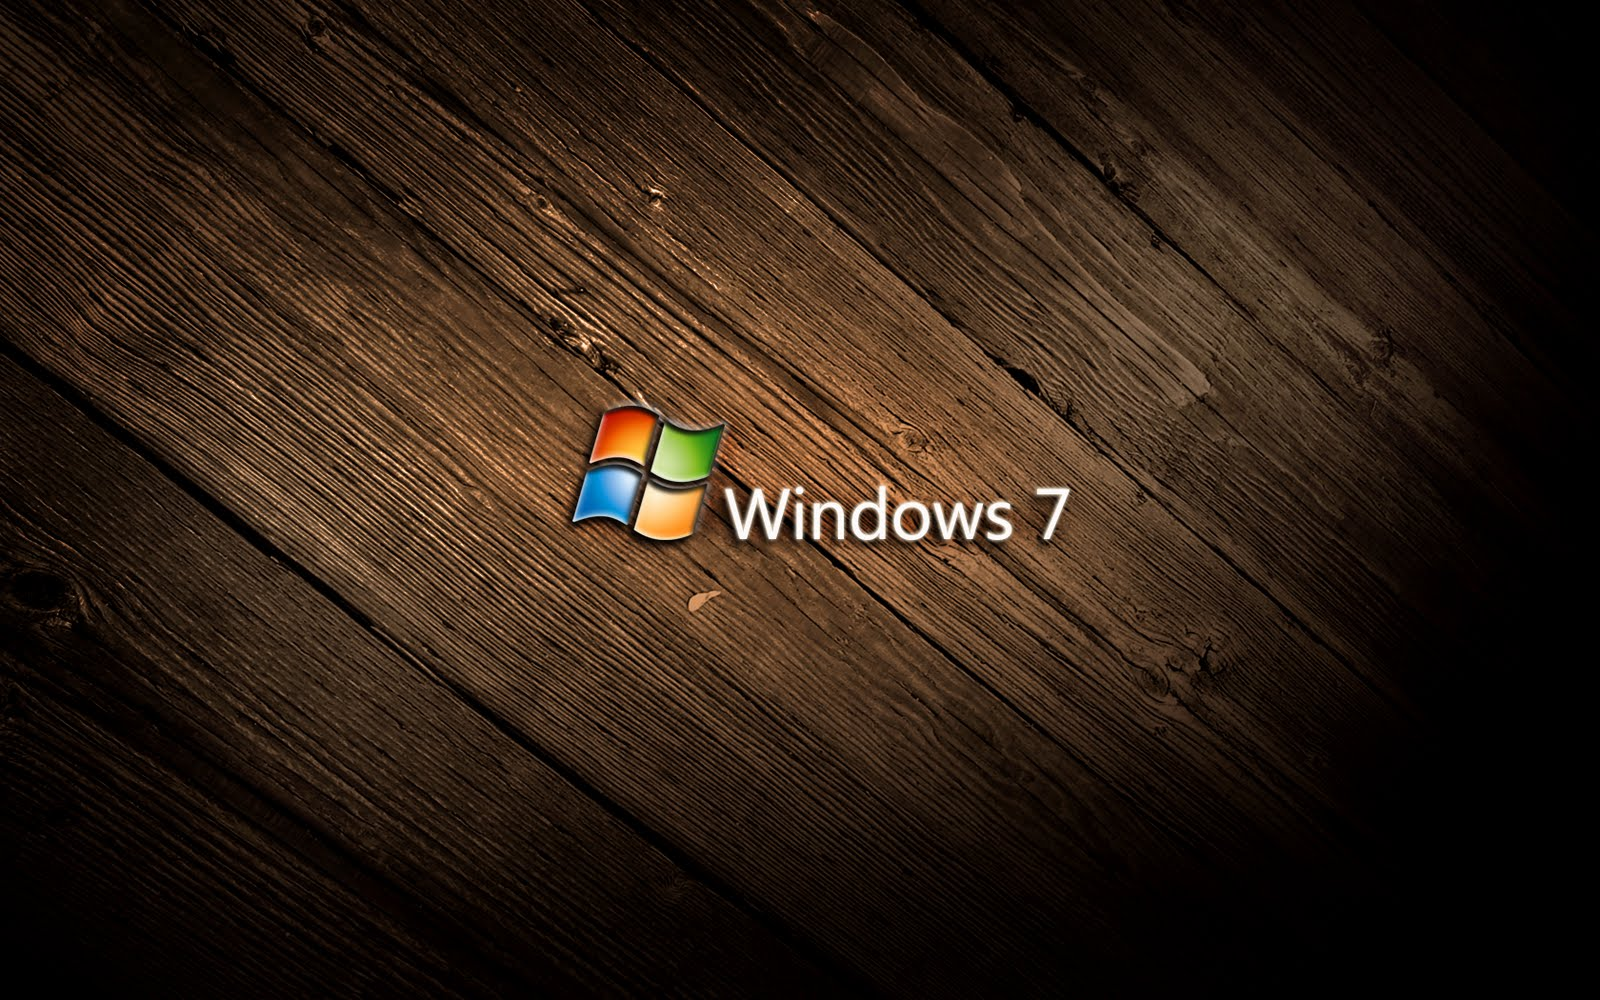 Windows 7 HD Wallpapers 1080p